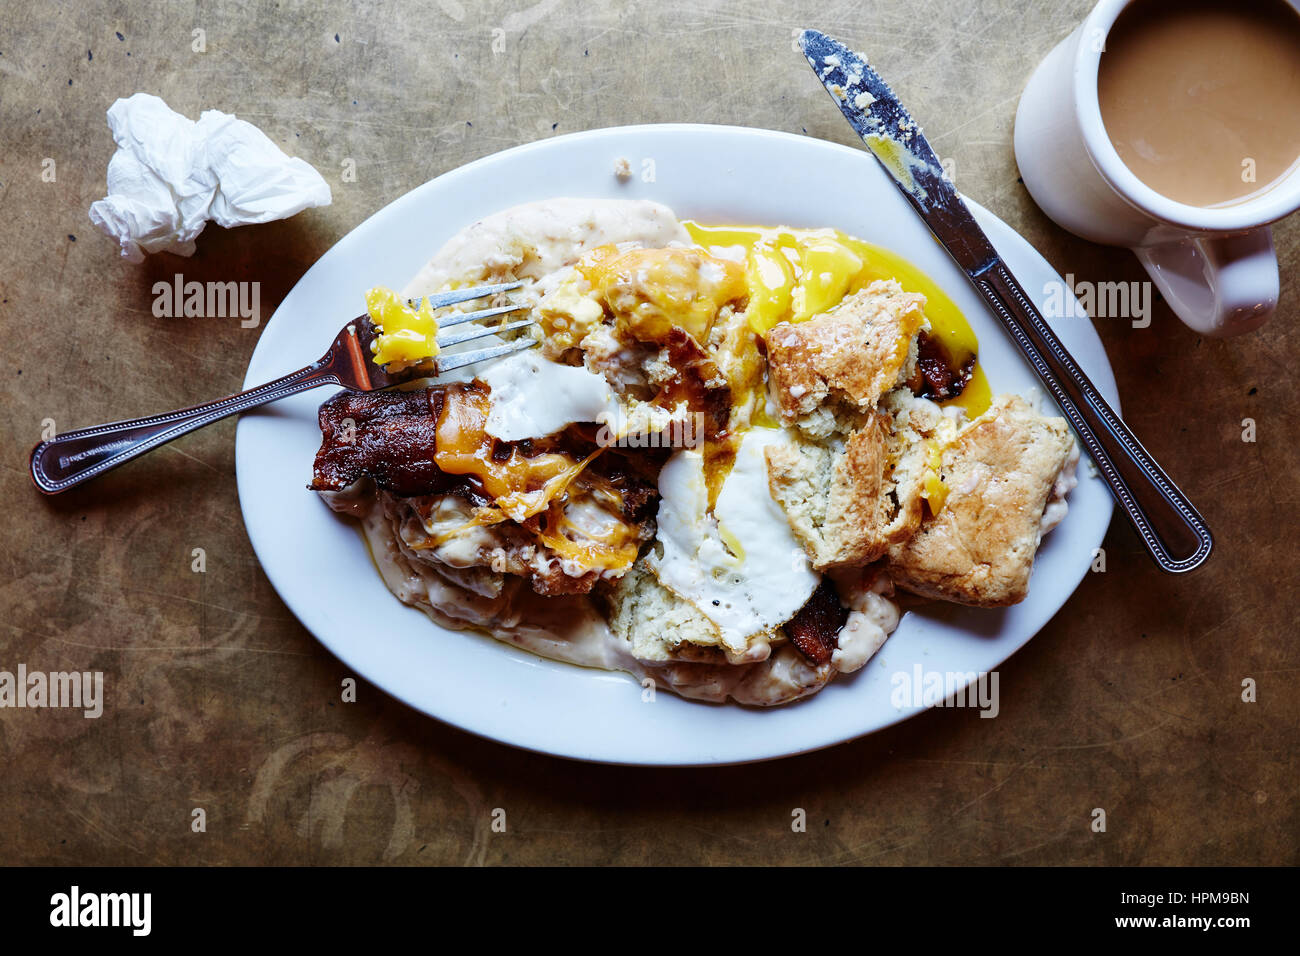 Southern Decadence - Buttermilk biscuit, chicken fried chicken, bacon, cheddar, country sausage gravy, sunny side - Stock Image